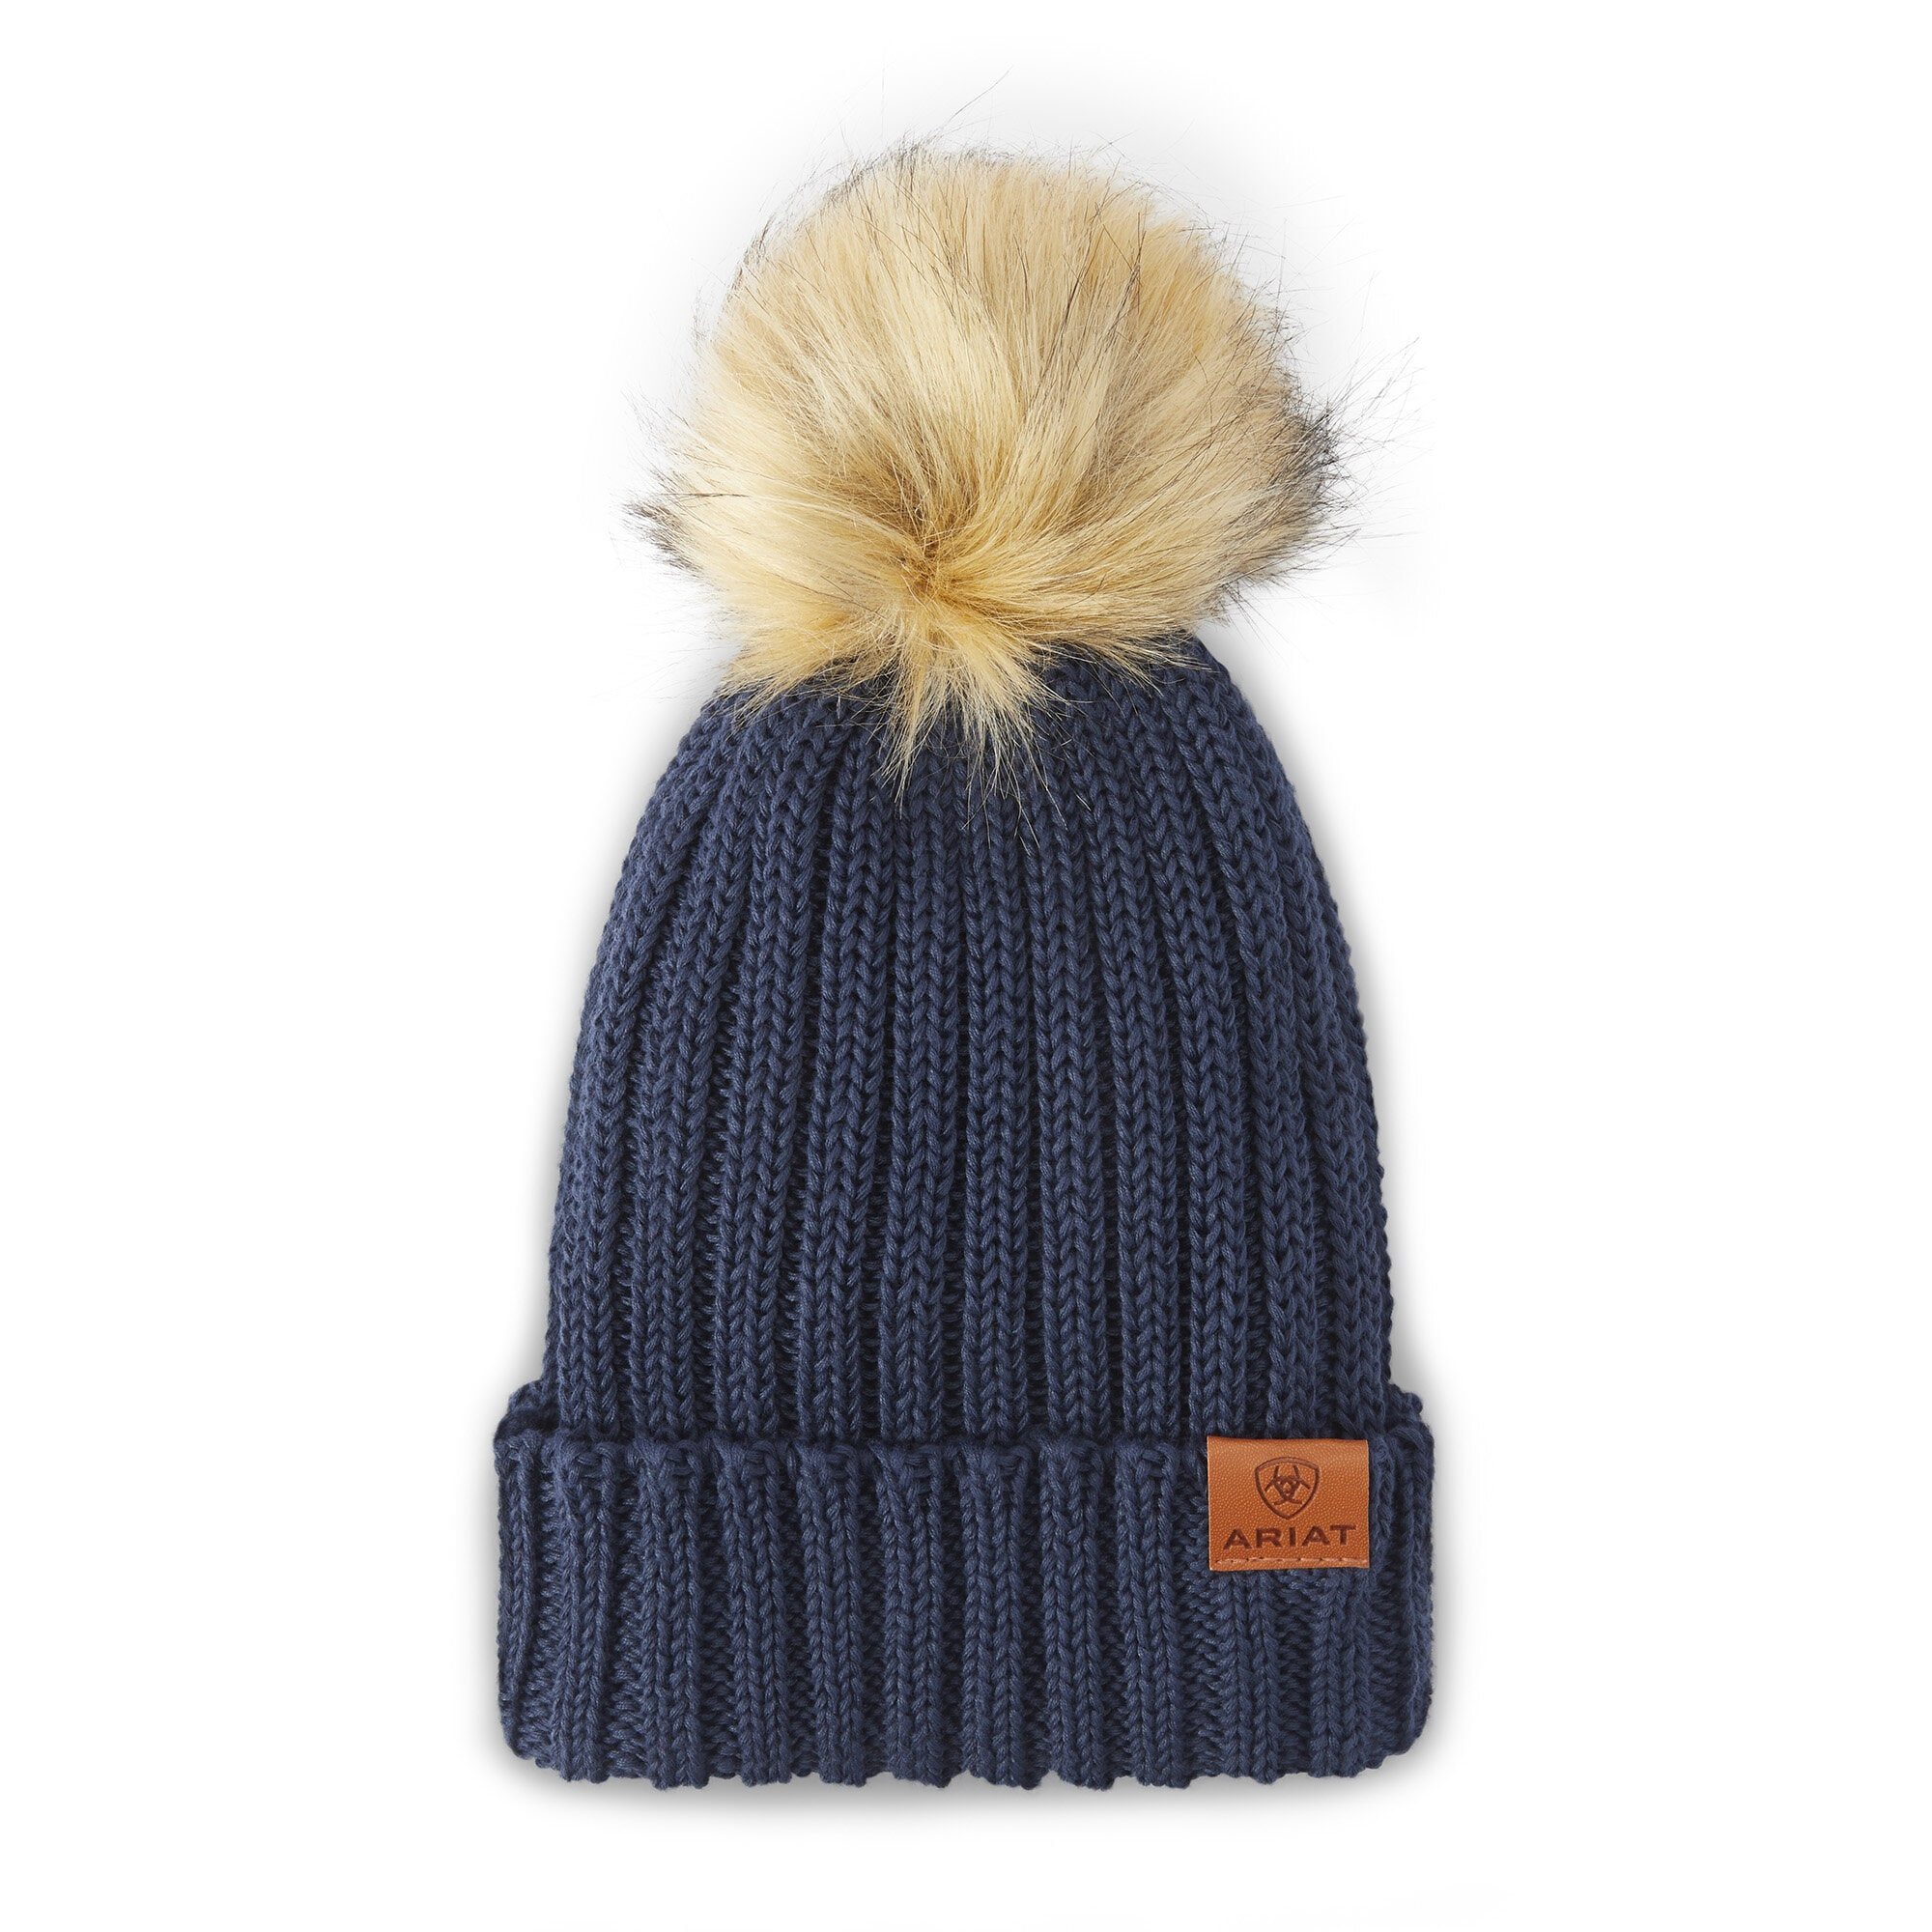 Cotswold Beanie - Navy Eclipse